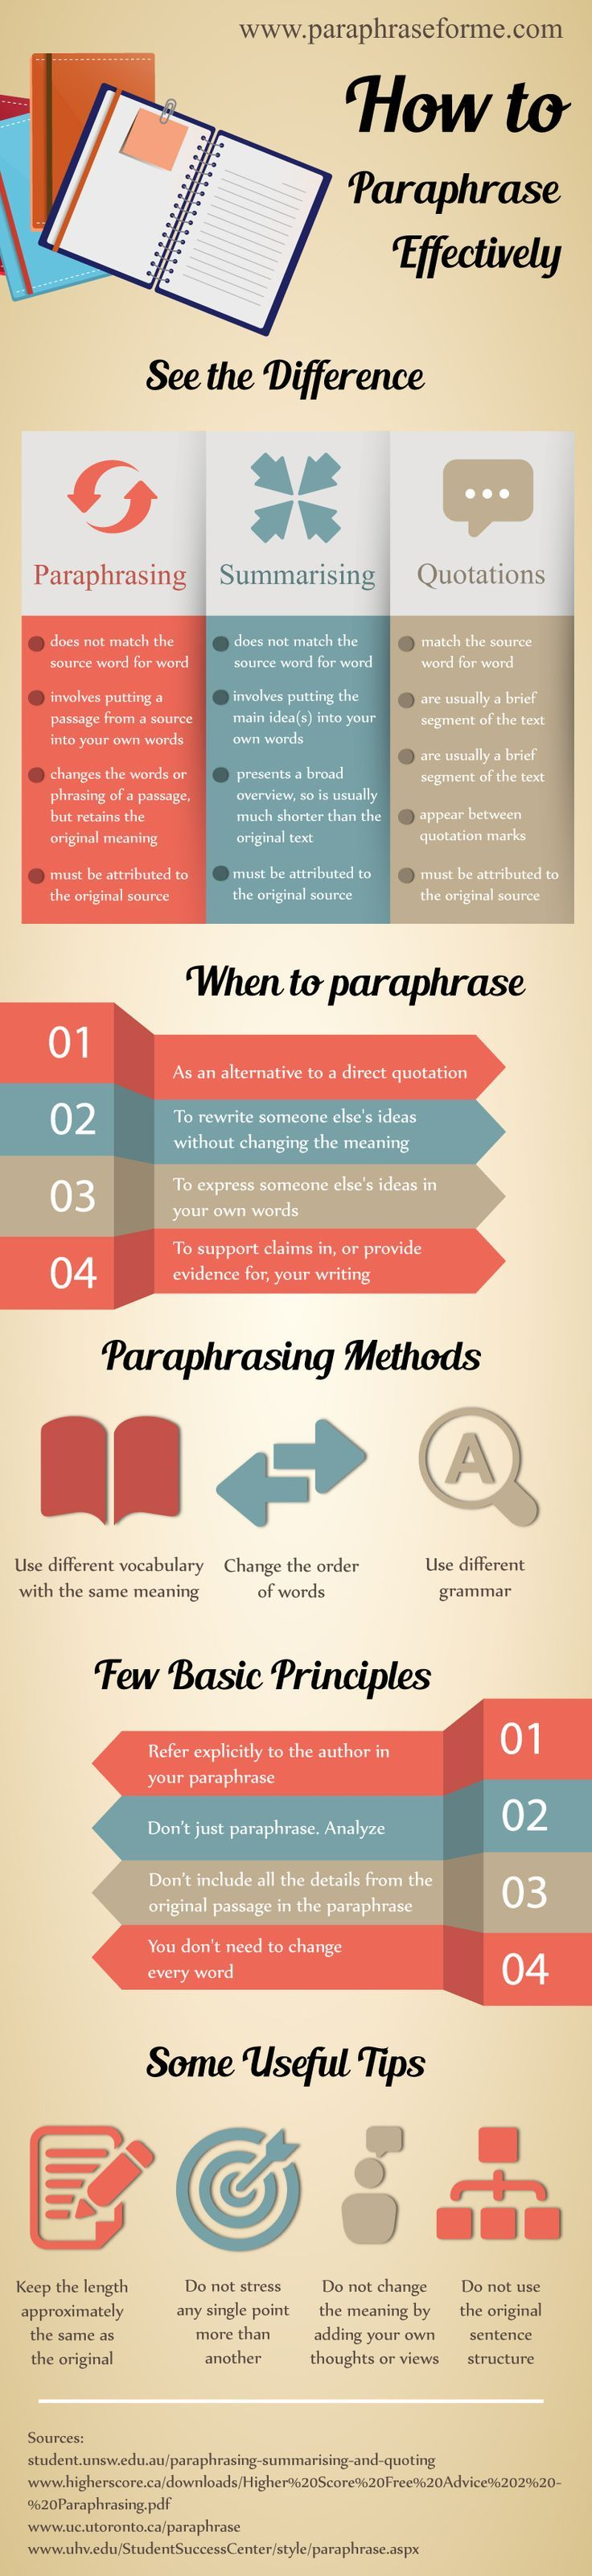 You Will Get The Information About How To Paraphrase Effectively Please Cleck Here Http Www Paraphraseforme Com Fo Academic Writing Teaching Motivational Activity For Paraphrasing